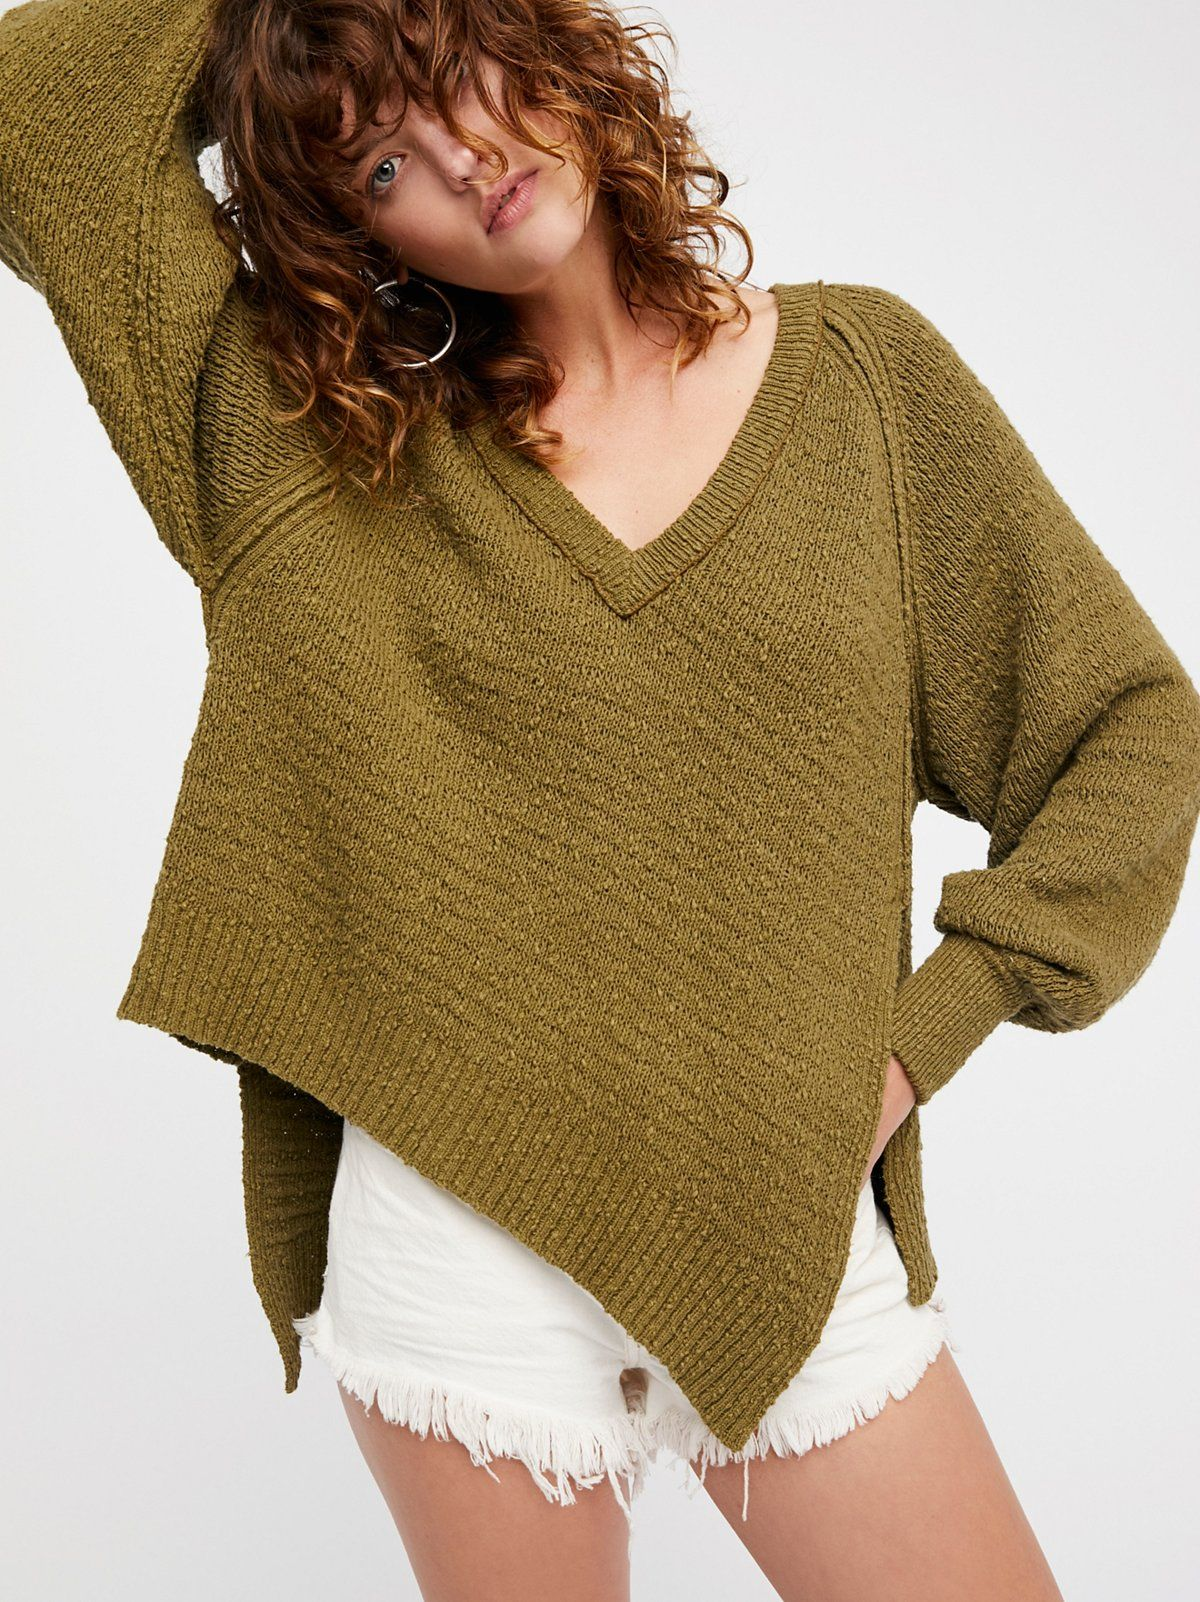 West Coast Pullover | Chunky knit cotton sweater featuring an ...